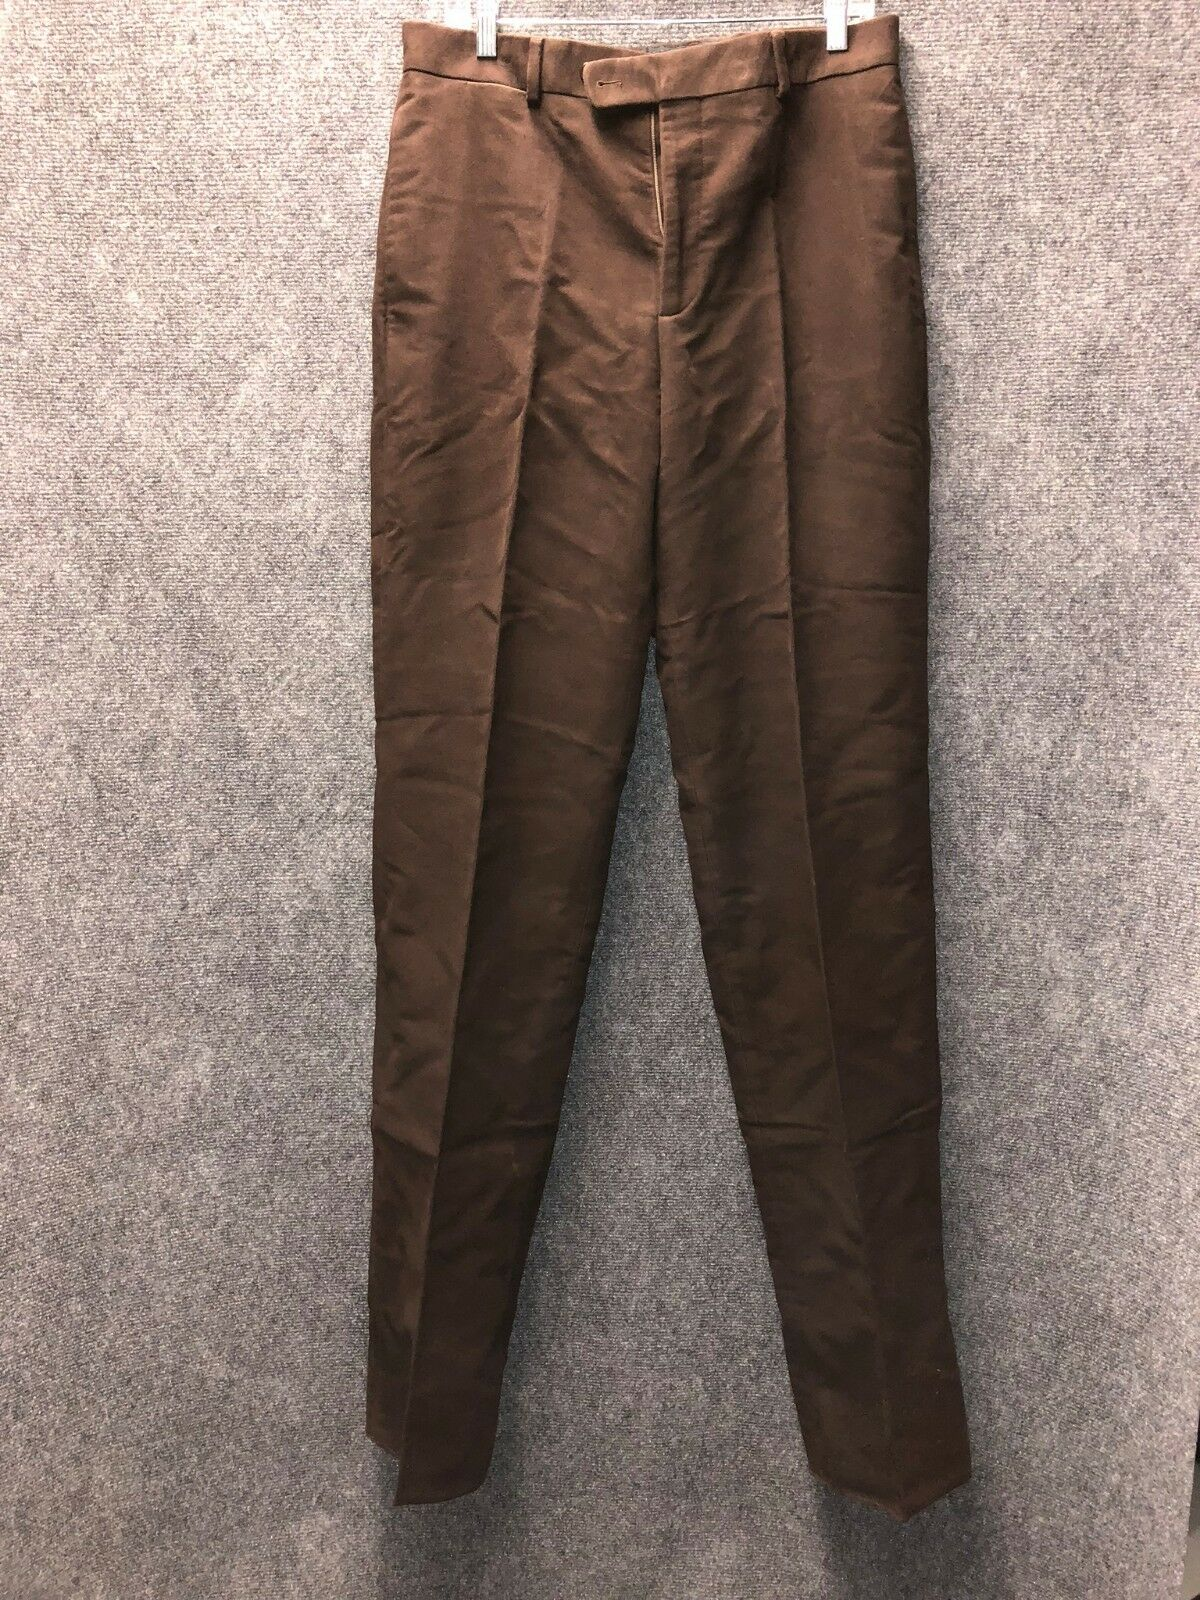 J. Peterman Men's Brown Brushed Cotton Dress Pants Size 32